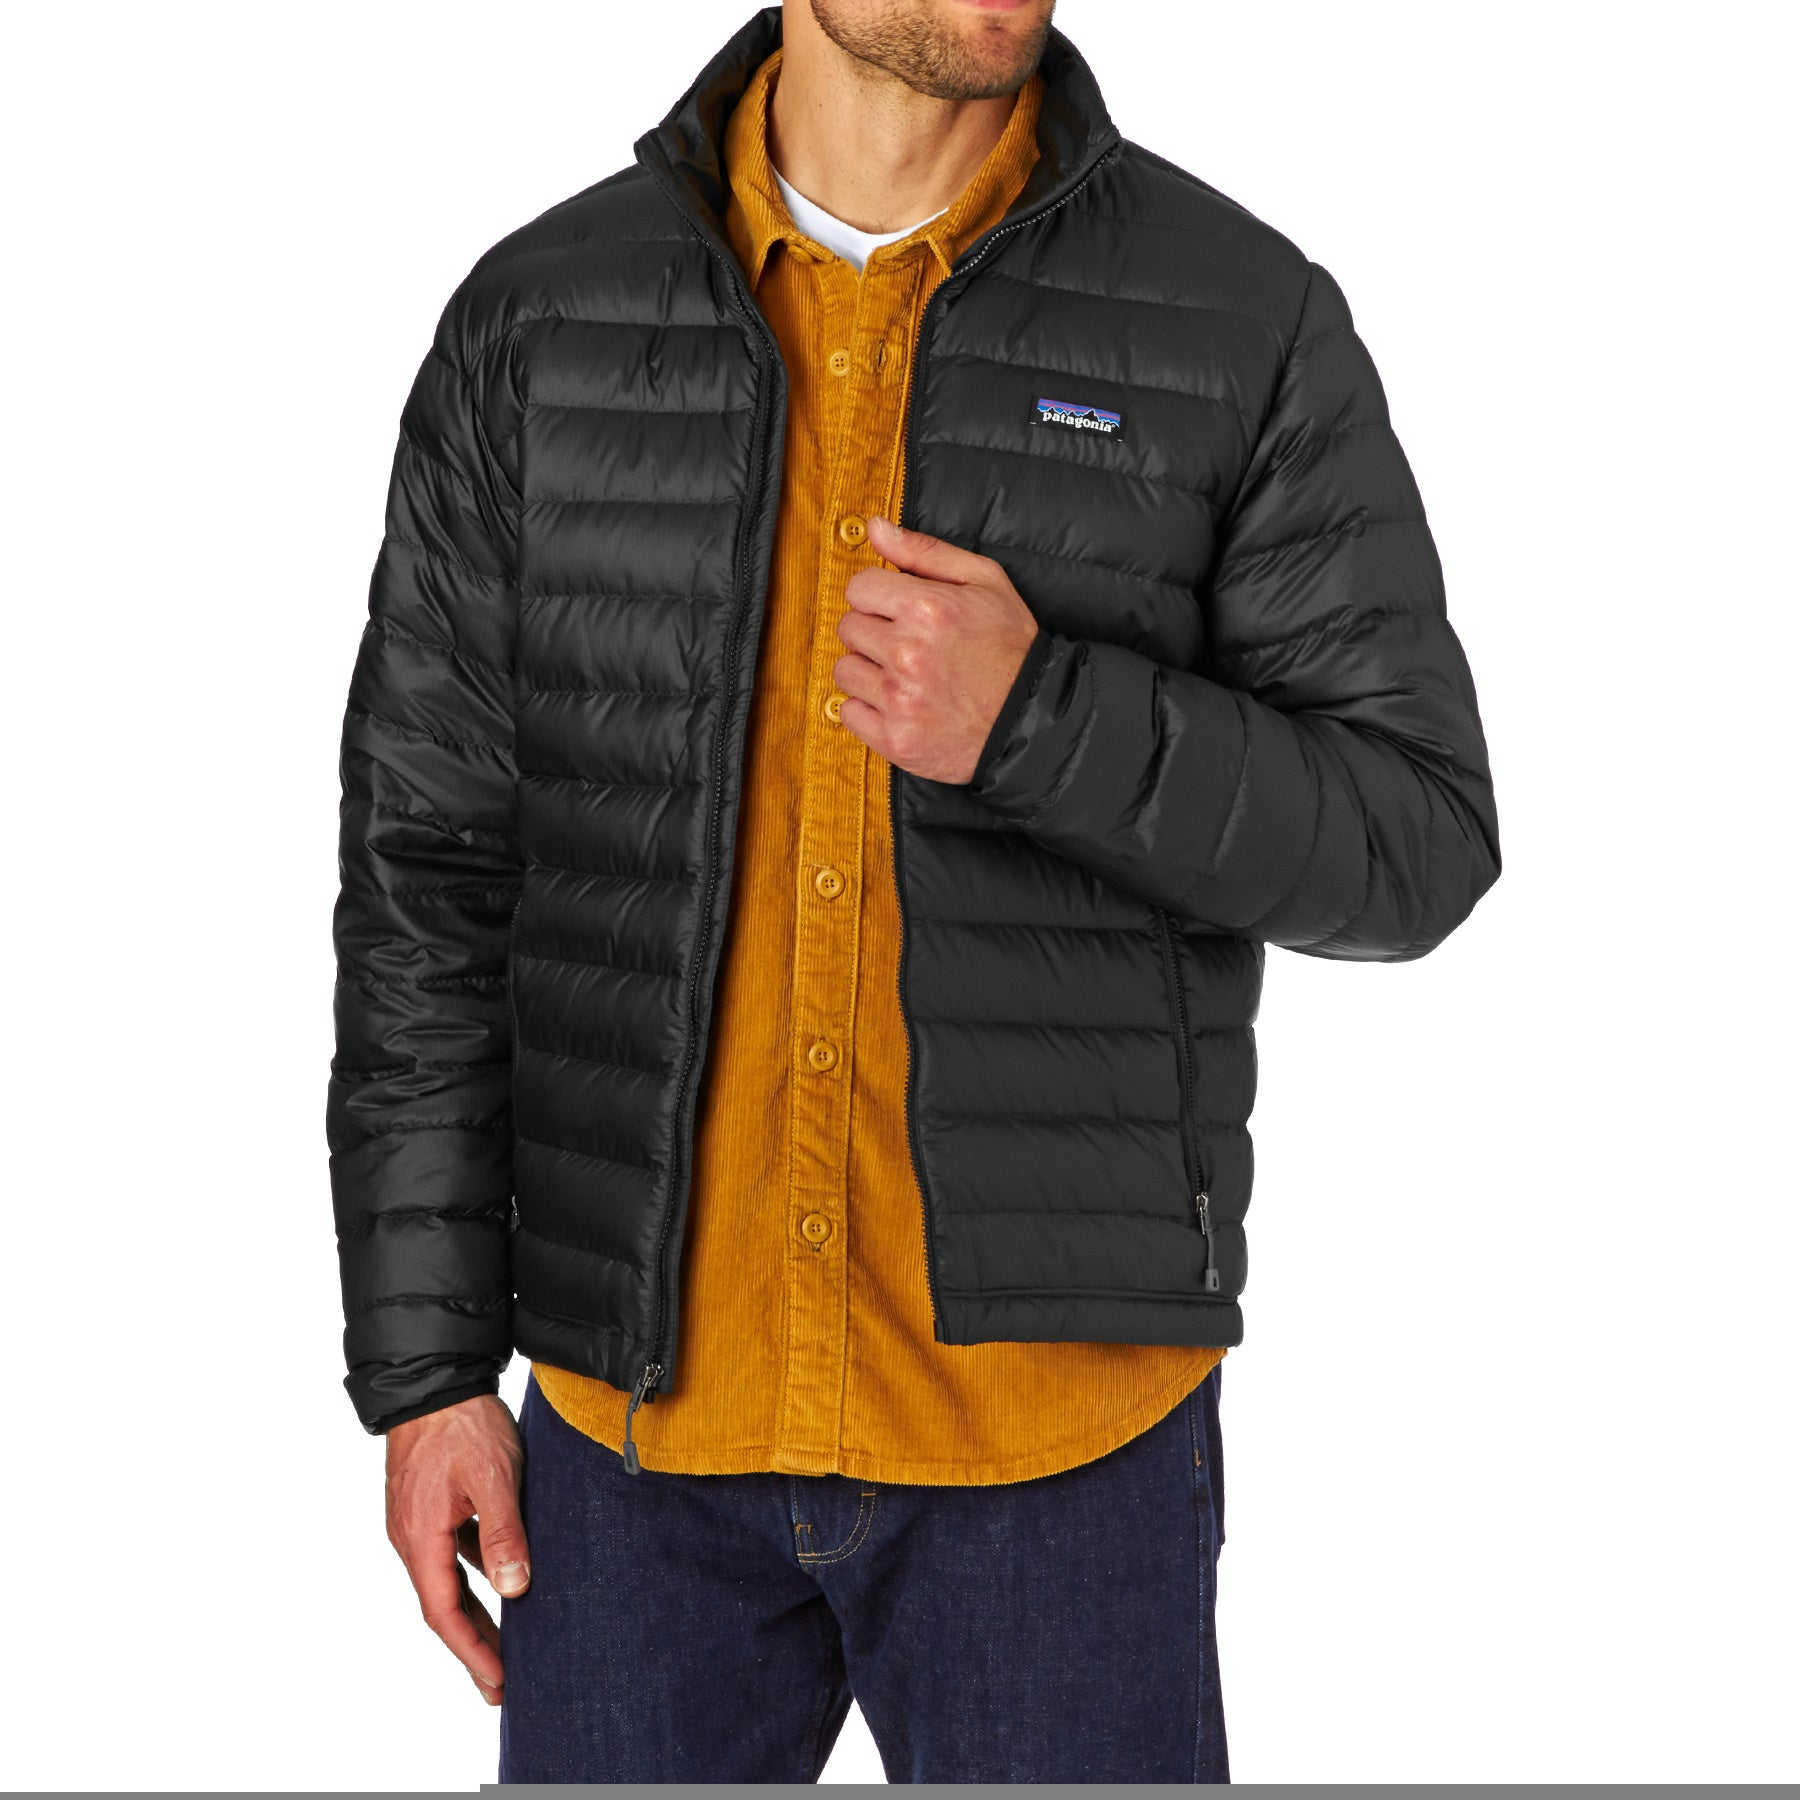 Patagonia Sweater Down Jacket - Black